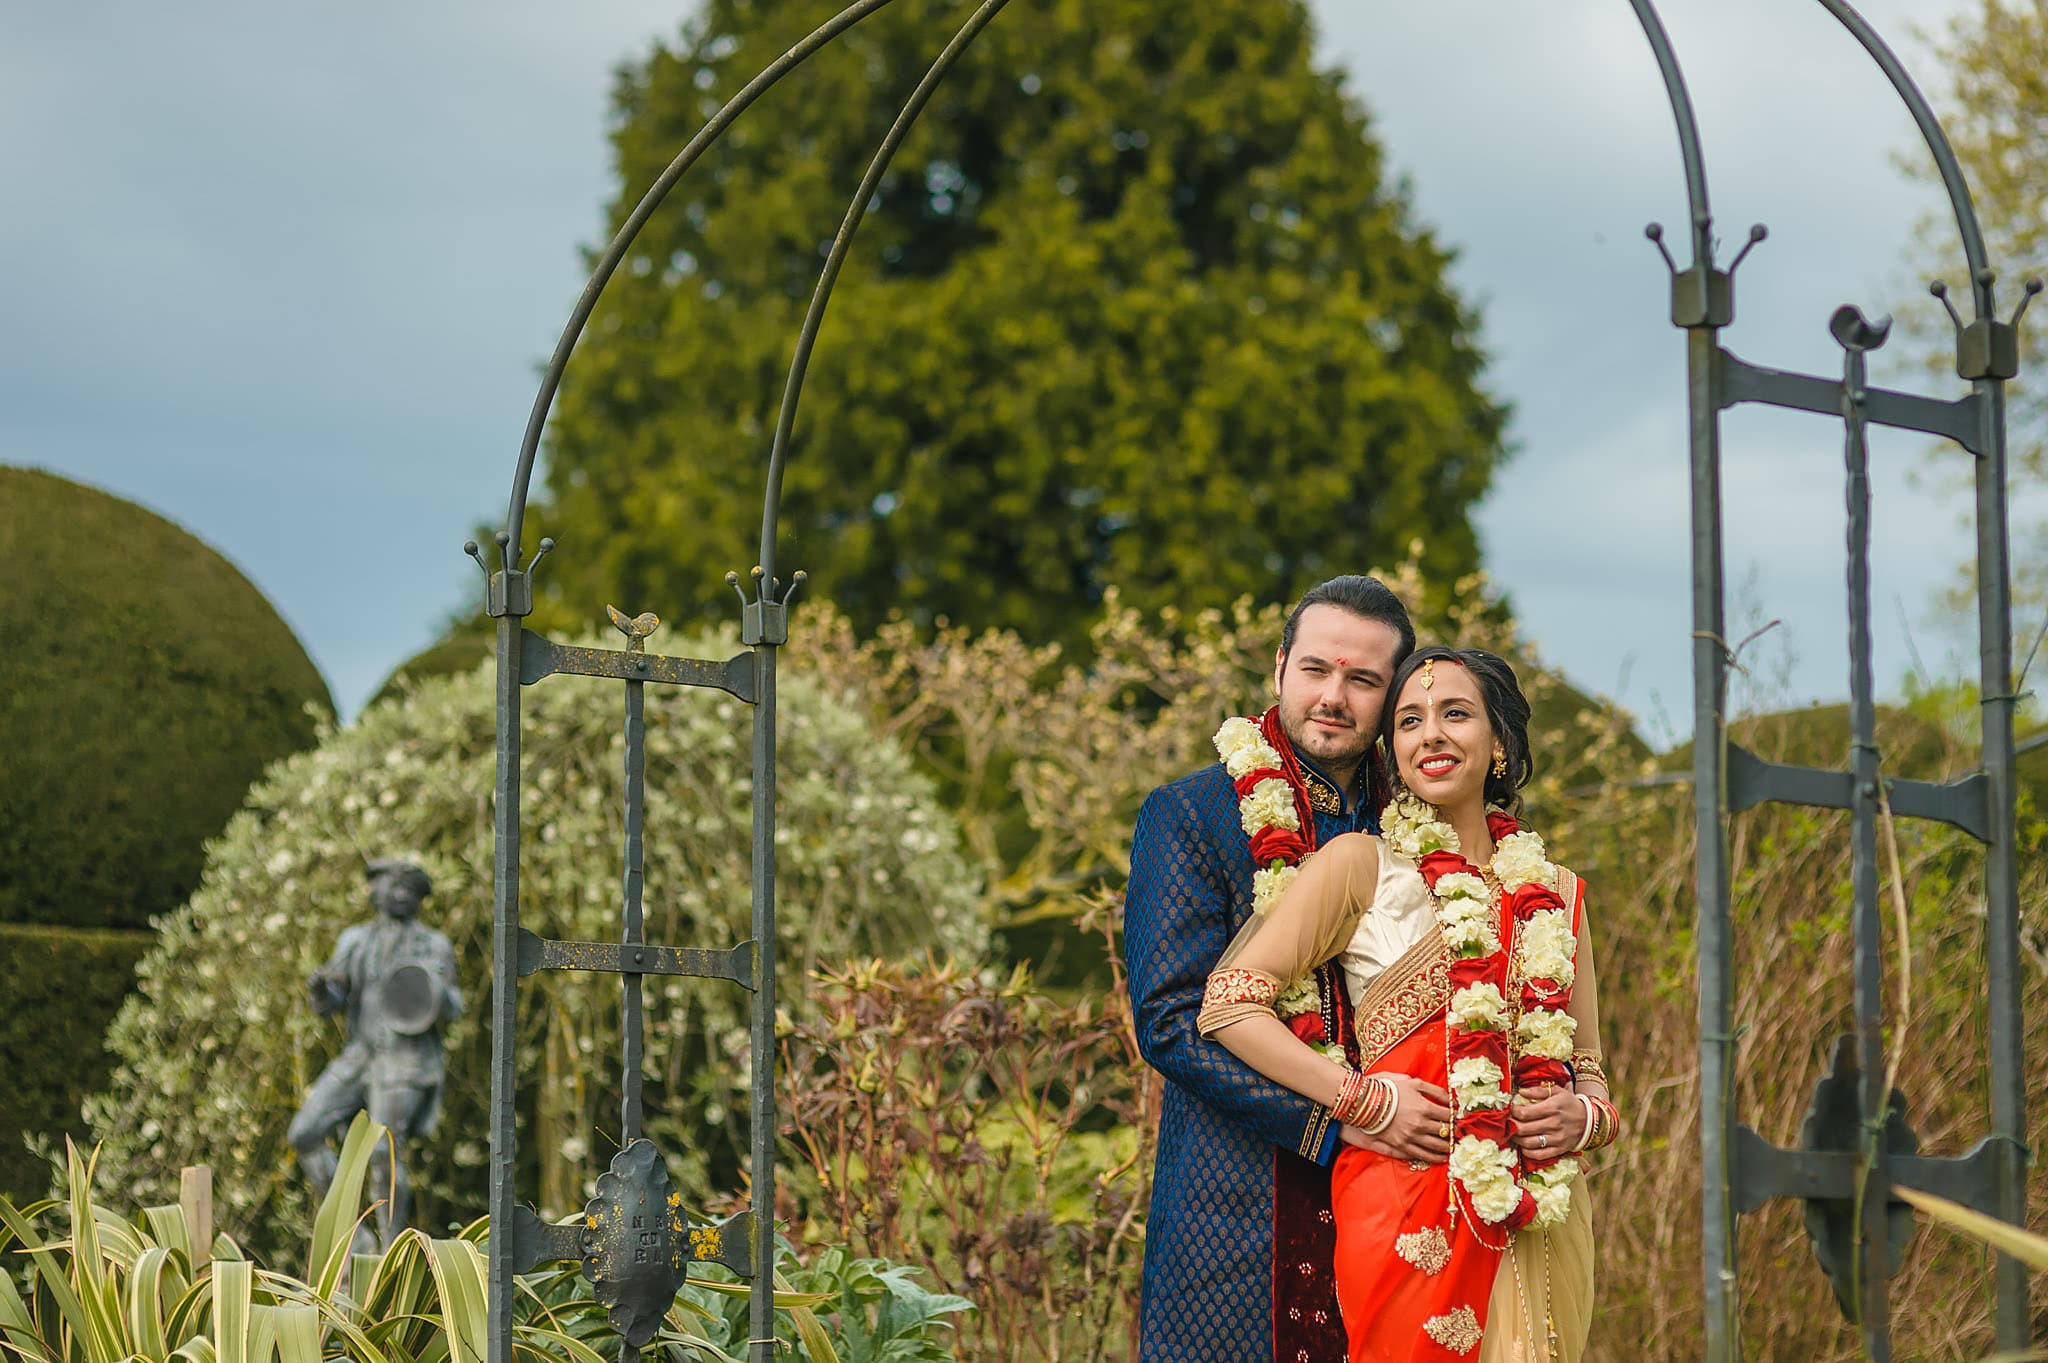 birtsmorton court wedding 192 - Sheena + Lee | Birtsmorton Court Wedding